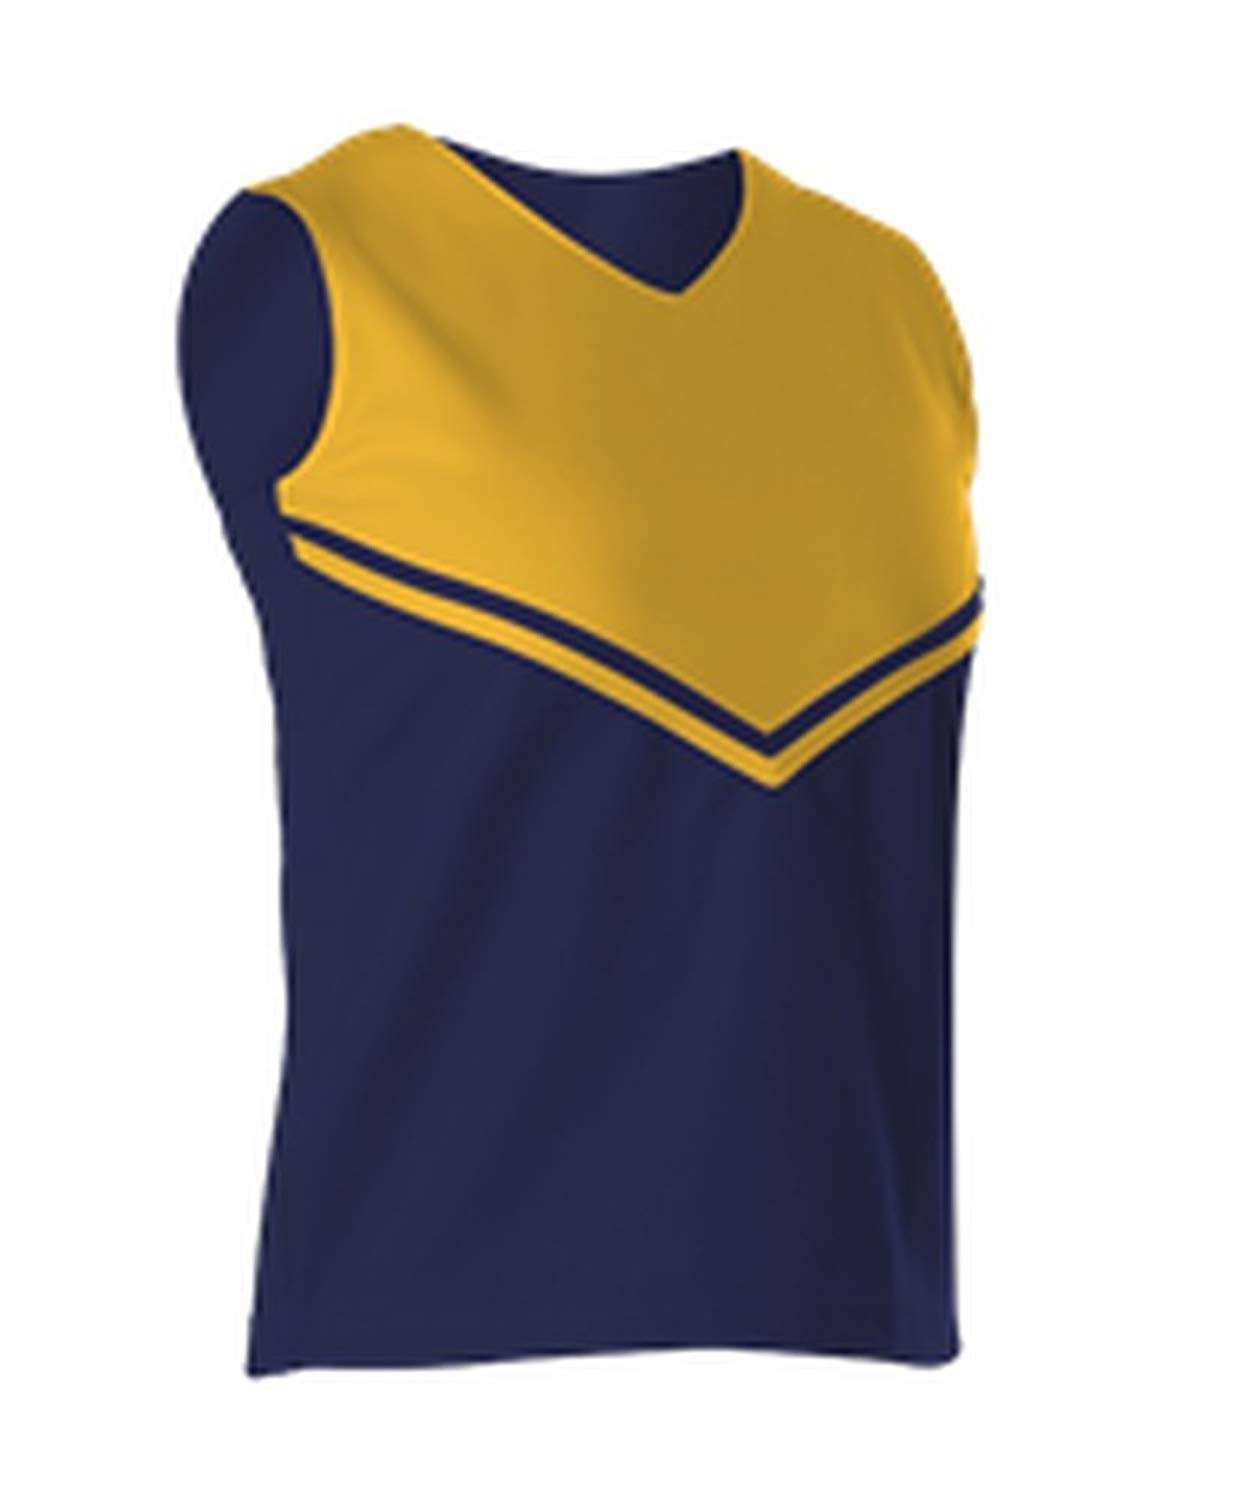 Alleson Cheer Girls Youth Cheerleading V Shell Top With Braid C101VY